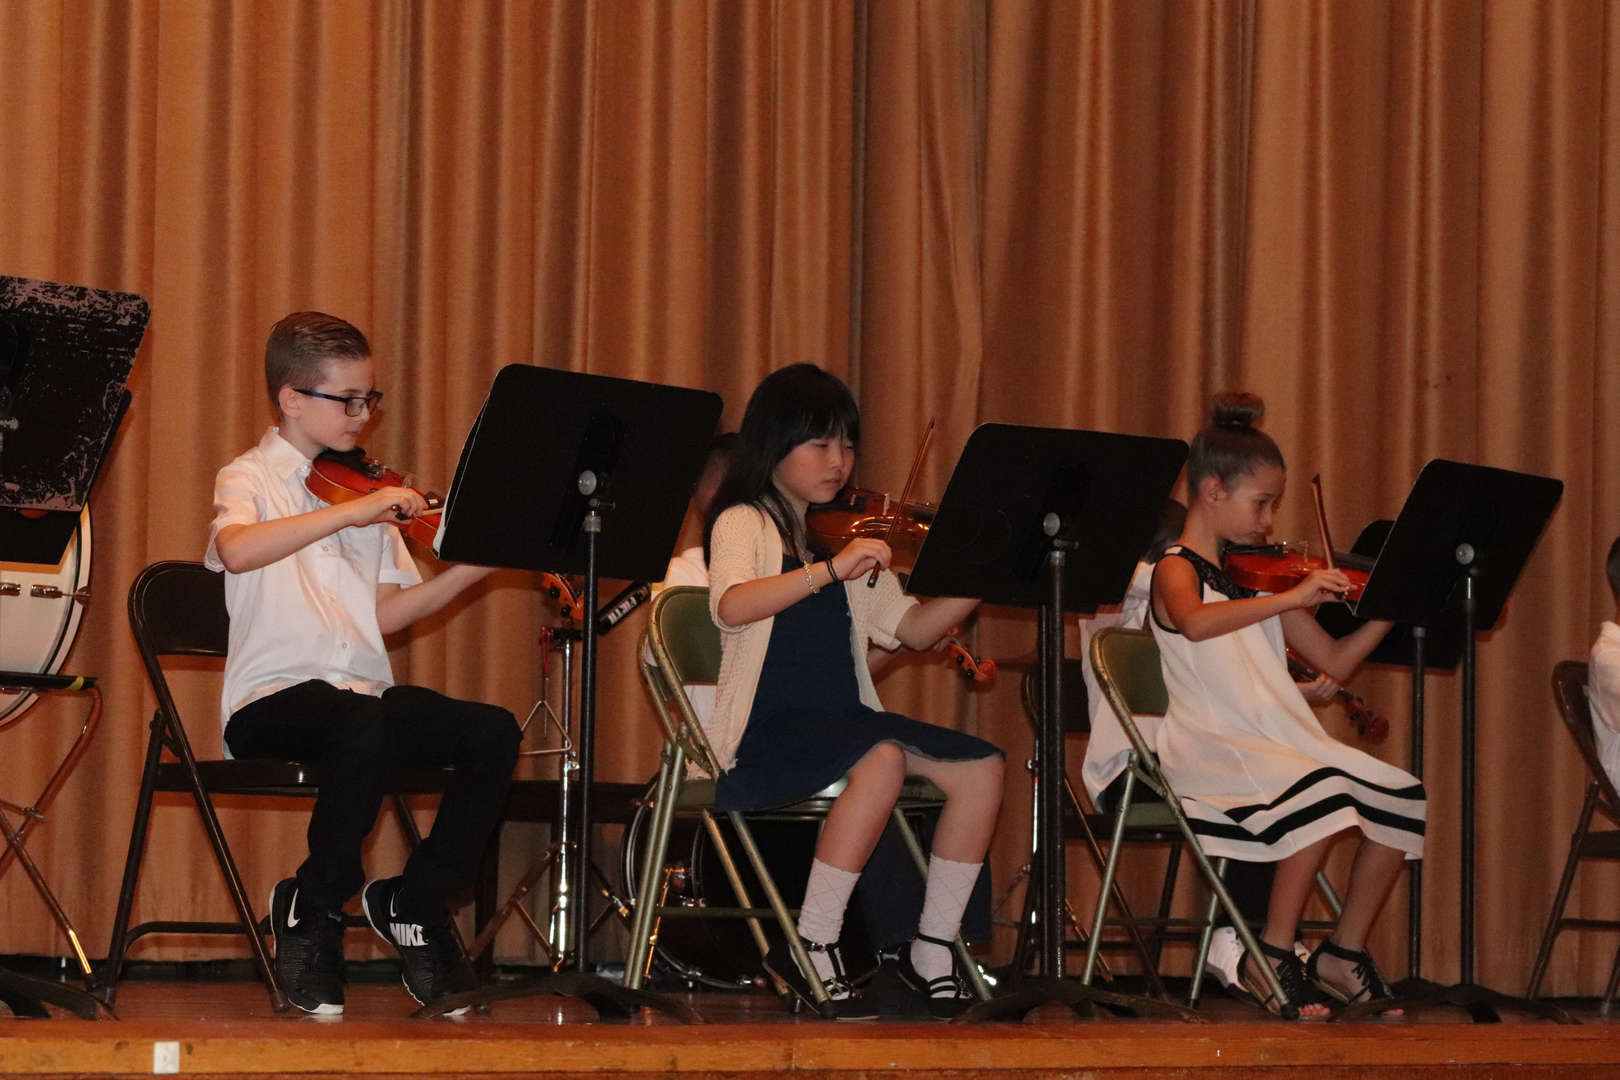 another group of violinists on stage